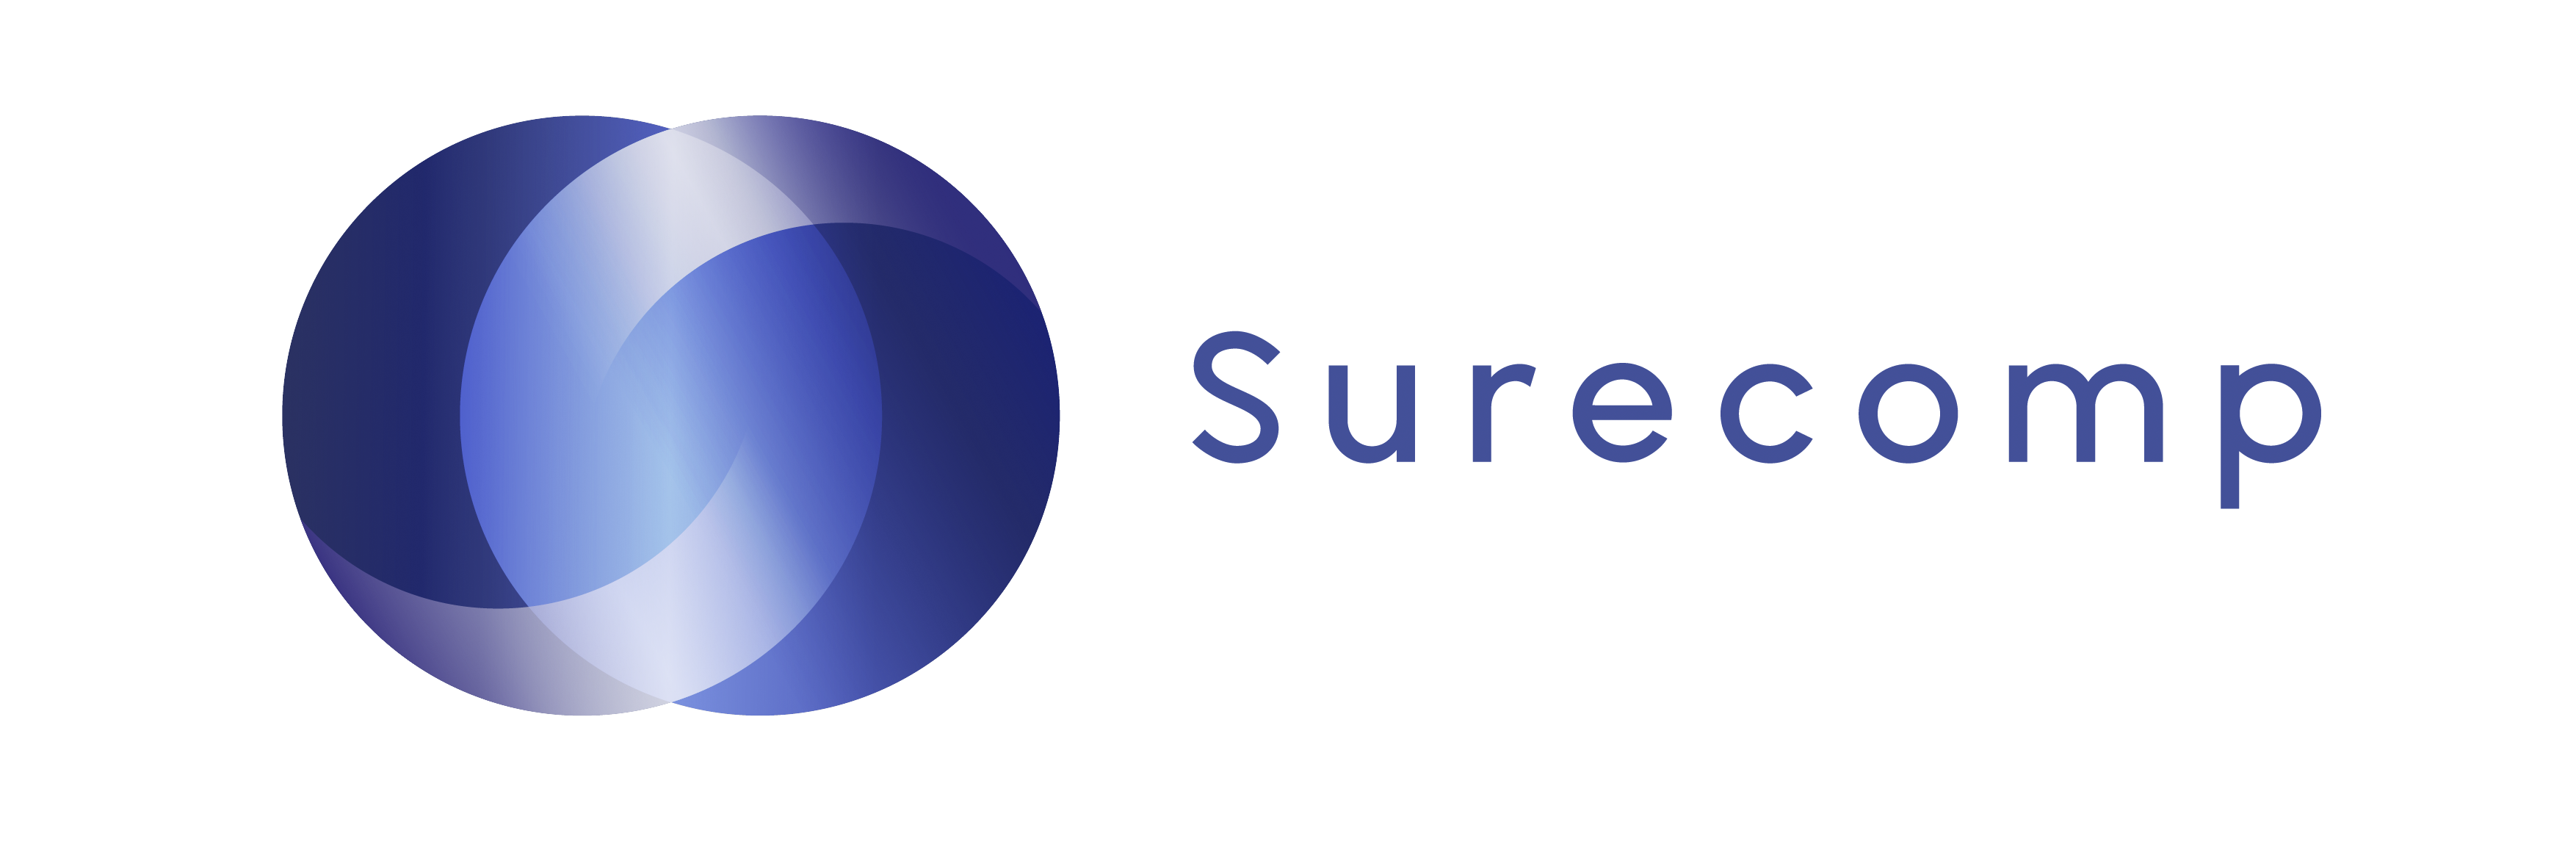 Surecomp Trade Finance Solution Earns 2015 SWIFT Certification